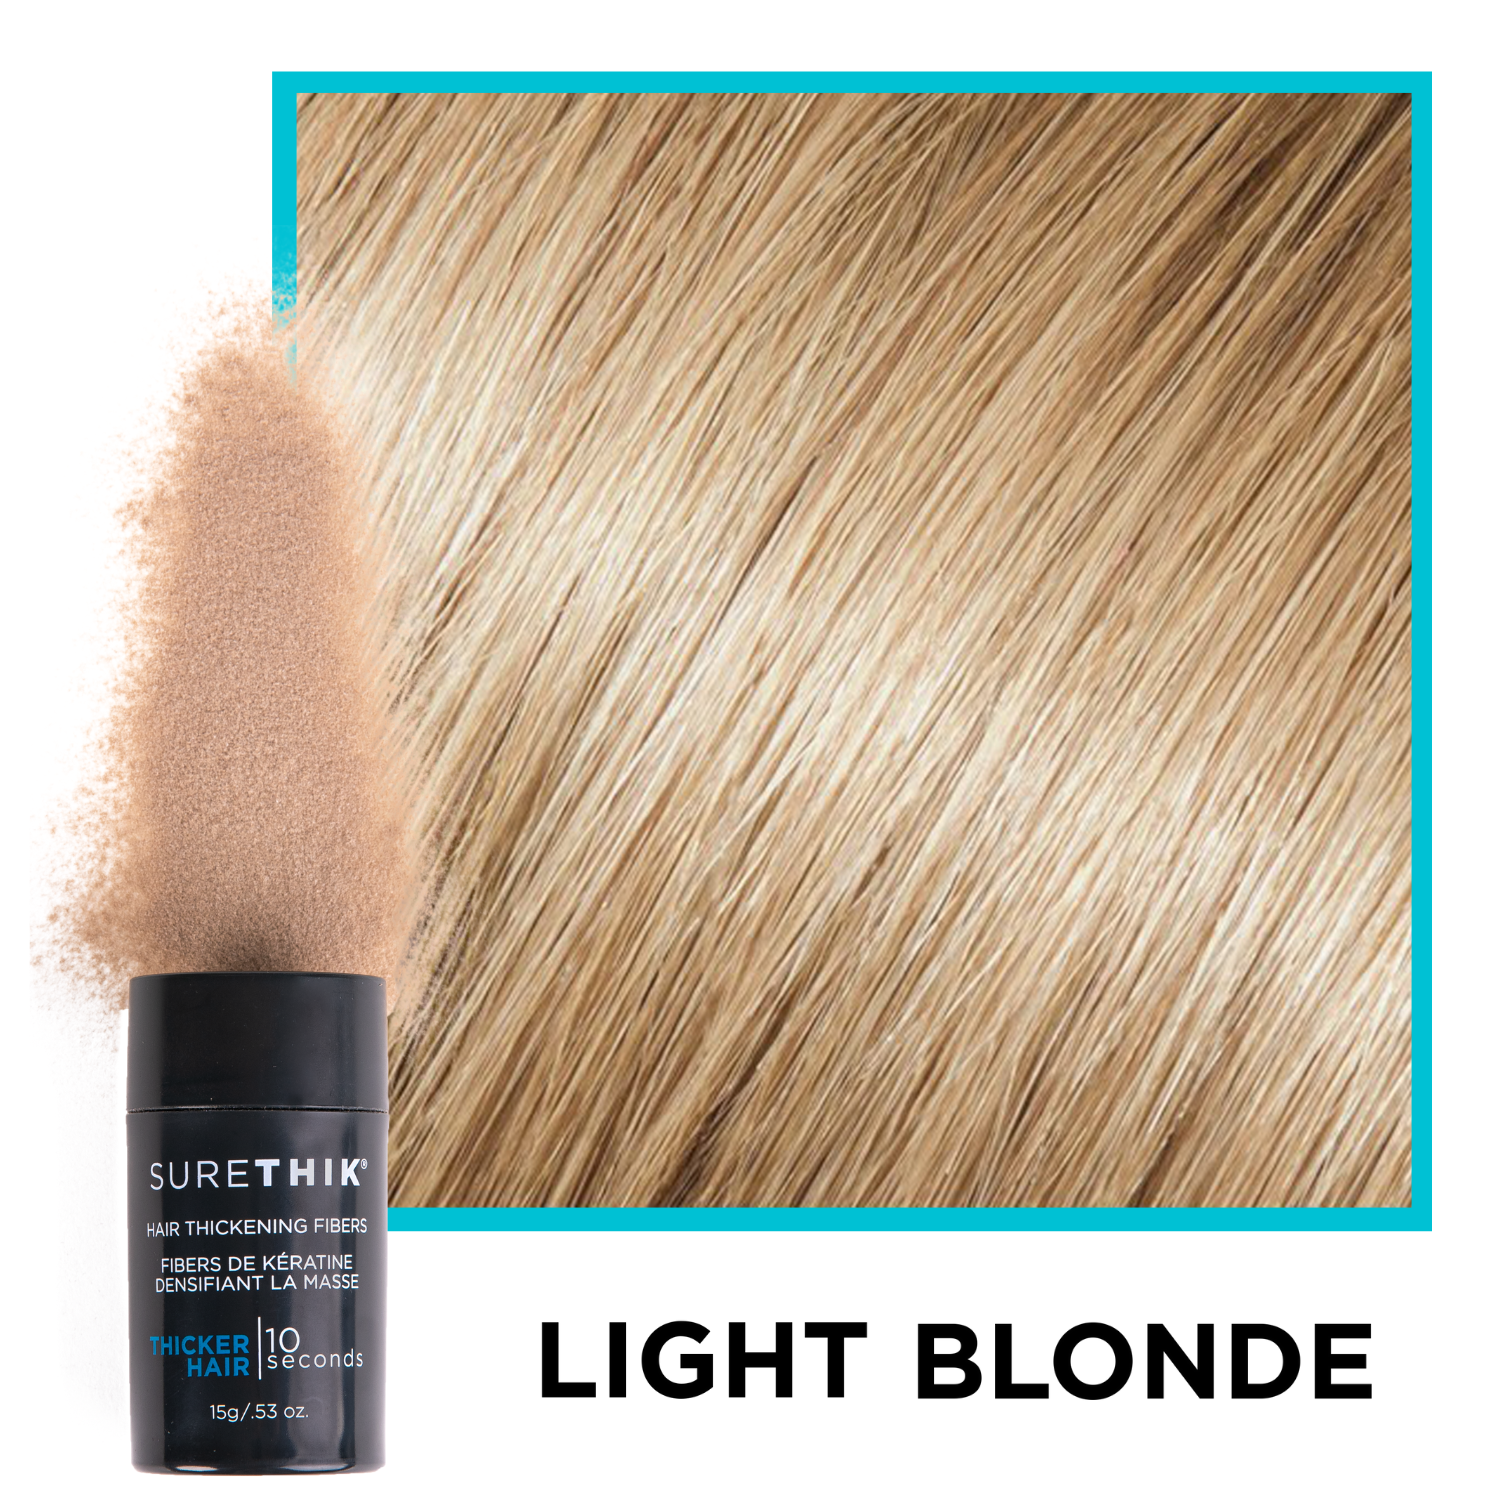 Hair Thickening Fibers (15g / 0.53oz) - Limited Time Offer